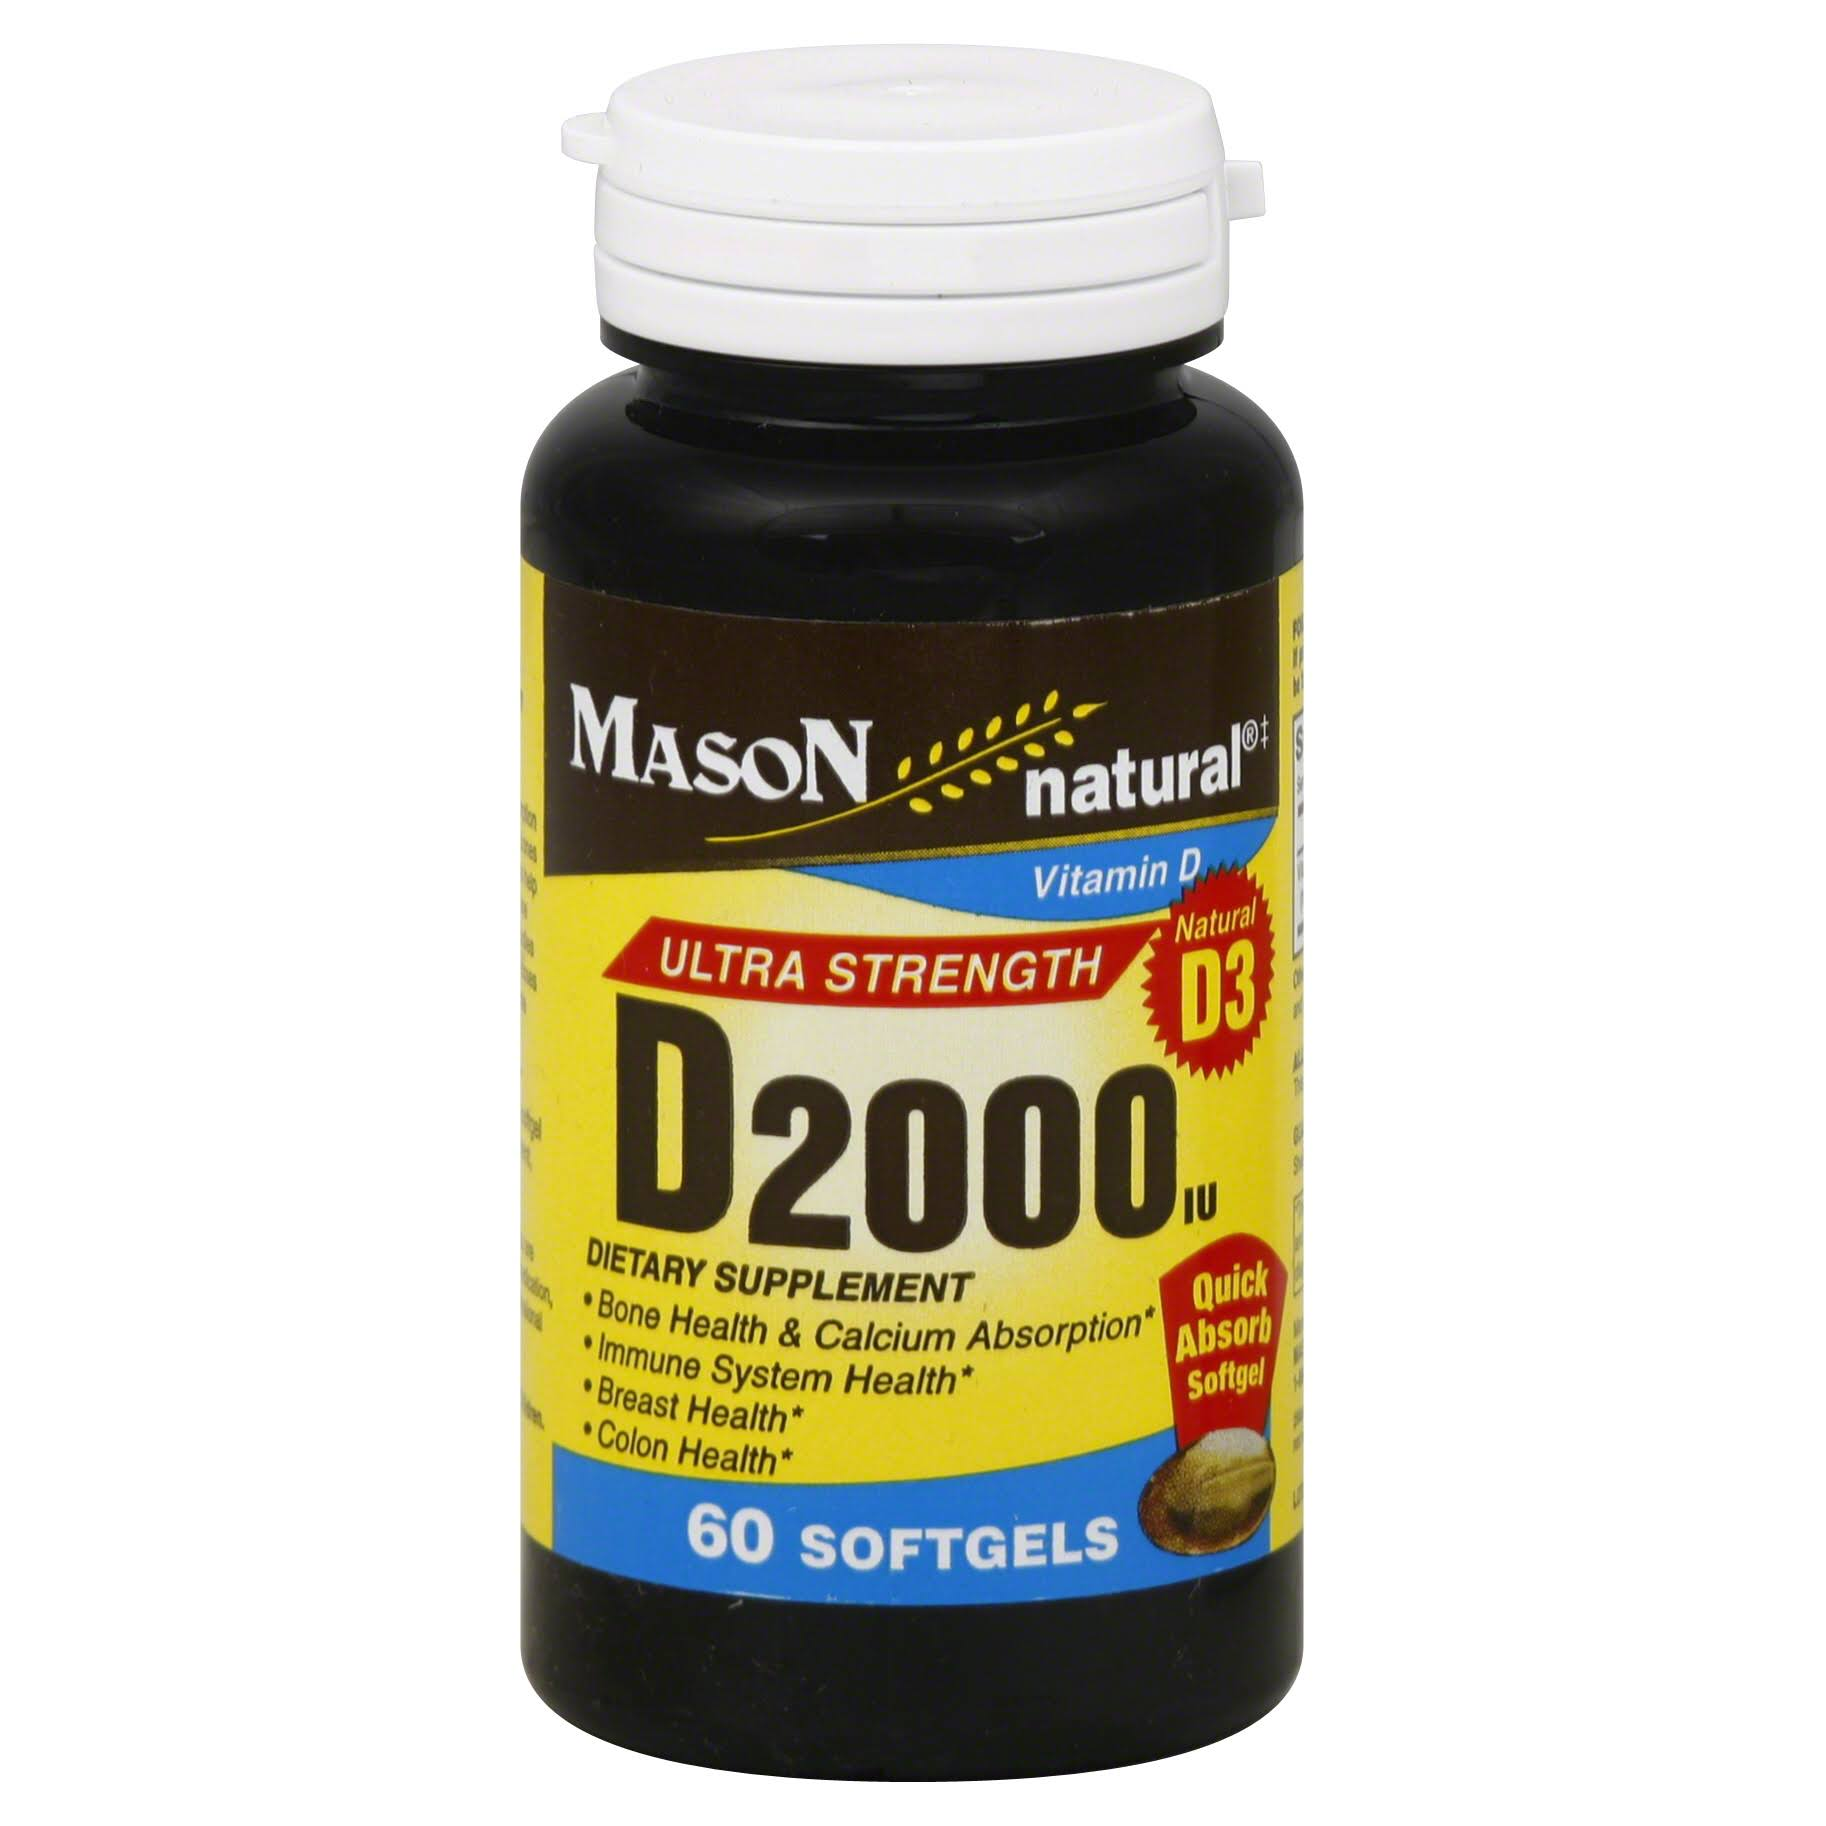 Mason Natural Ultra Strength Vitamin D Softgels - 2000iu, x60